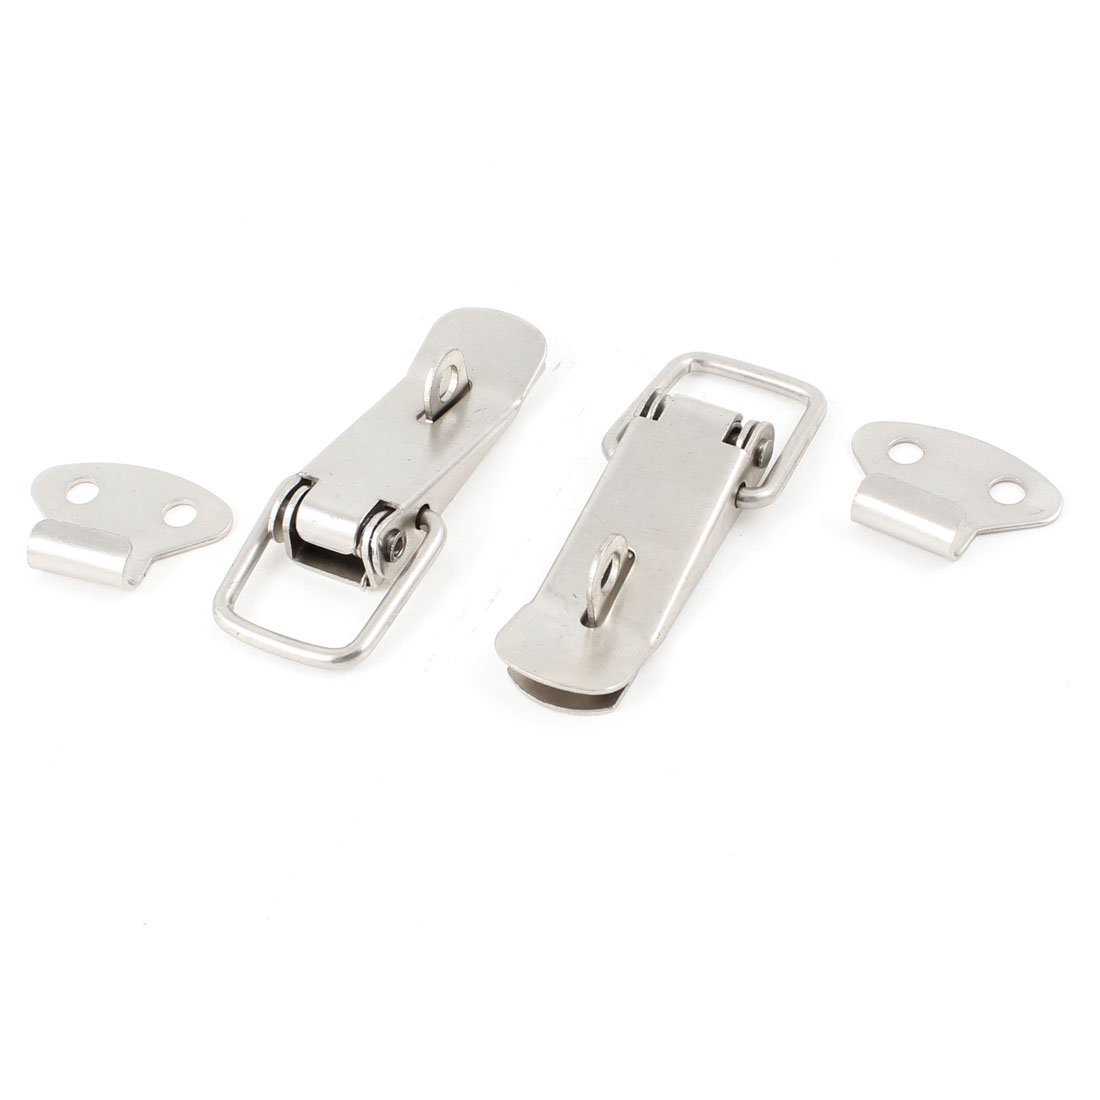 2pcs Silver Tone Spring Loaded Toggle Latch Catch for Cases Boxes Chests